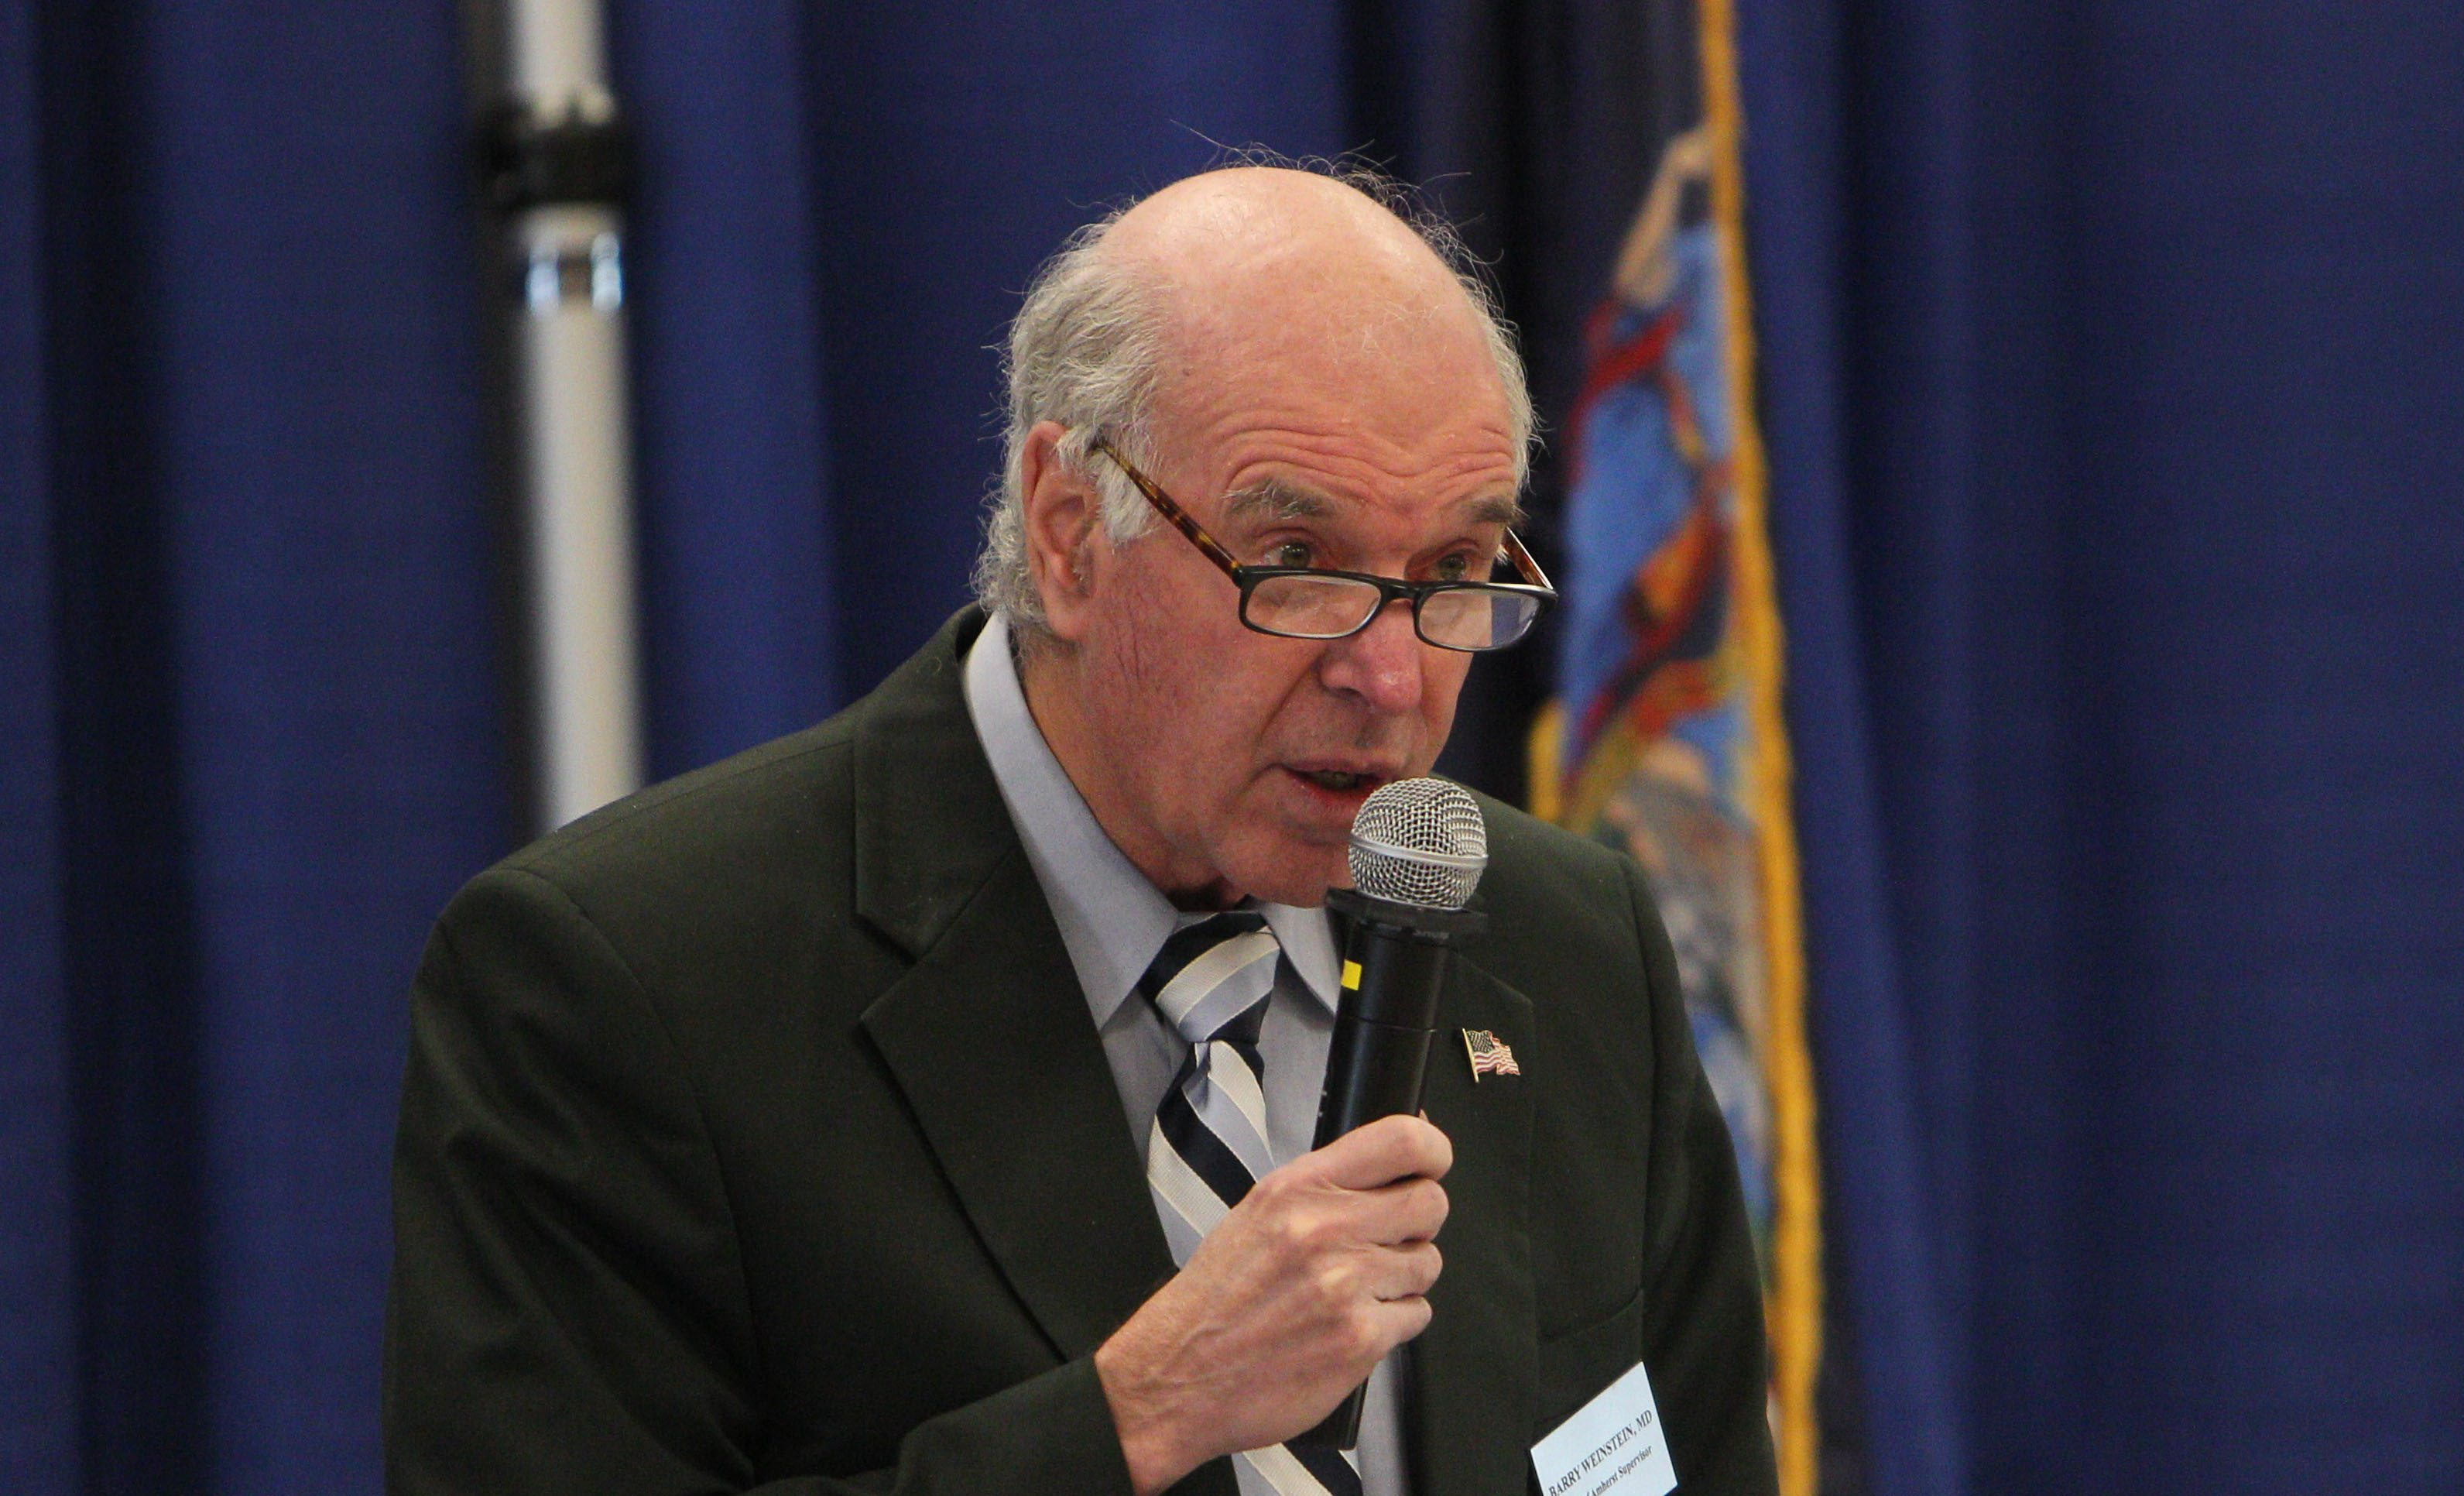 Amherst Supervisor Barry Weinstein's eighth and final budget calls for a 1 percent increase in the tax levy. (News file photo)